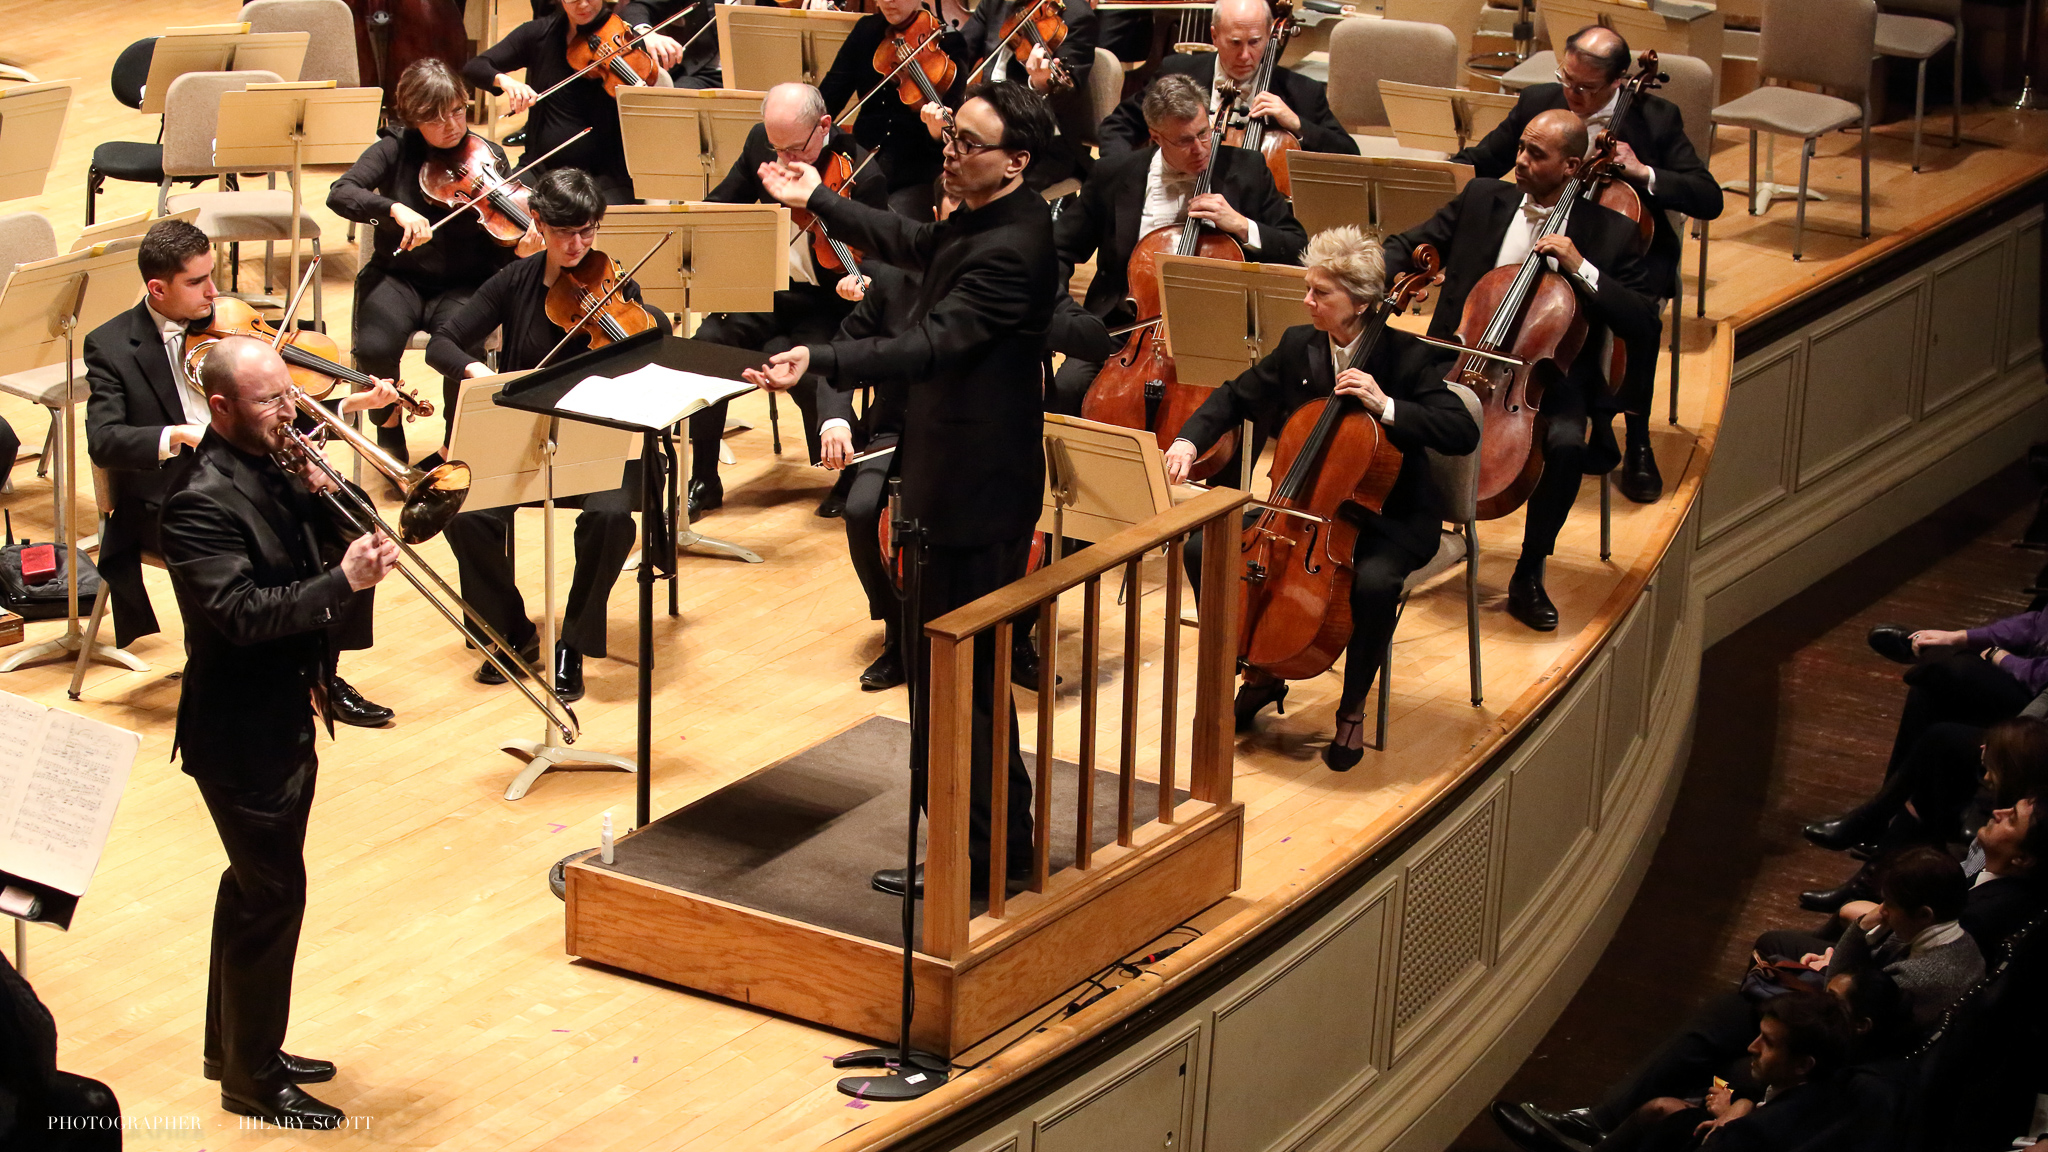 "Boston Globe : Nino Rota is best known in America for his ""Godfather"" and Fellini film scores, and Thursday marked his work's first appearance on a BSO program, with principal trombone Toby Oft playing his galloping, adventurous trombone concerto. The piece's structure evokes a journey down a road of trials, and Oft's lonesome, mellow solos stood as an intimate contrast to the sweeping orchestral texture."